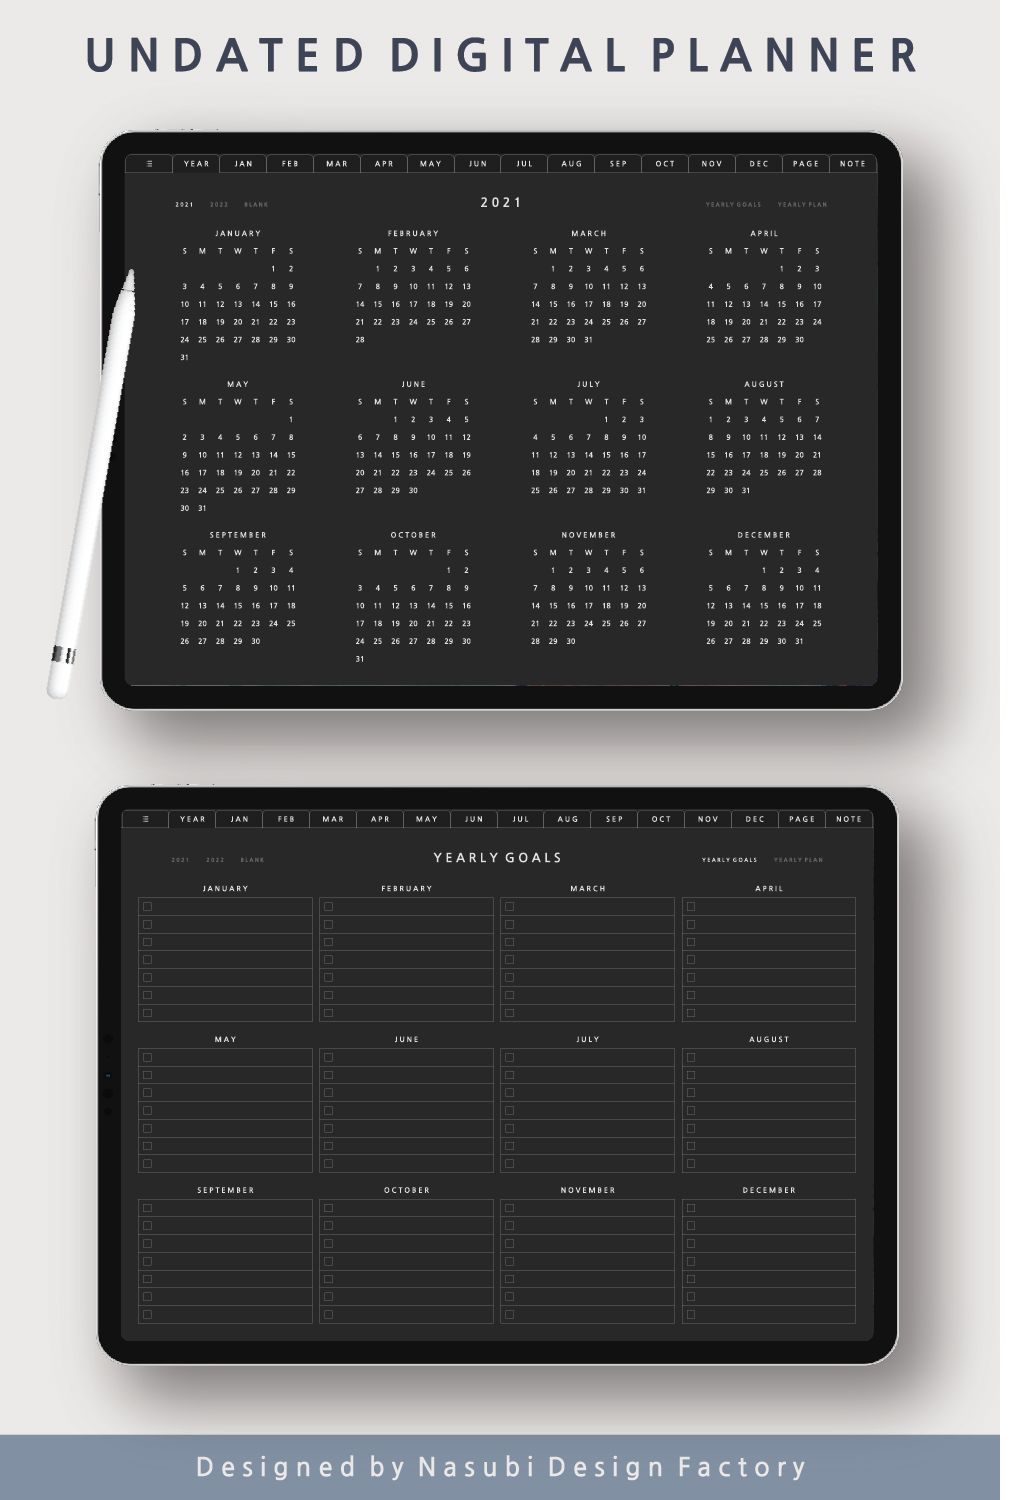 Dark Mode Undated Digital Planner Ipad Goodnotes Template Notability Hyperlinked Pdf Daily Weekly Monthly Yearly Digital Stickers In 2021 Digital Planner Digital Sticker Goals Planner